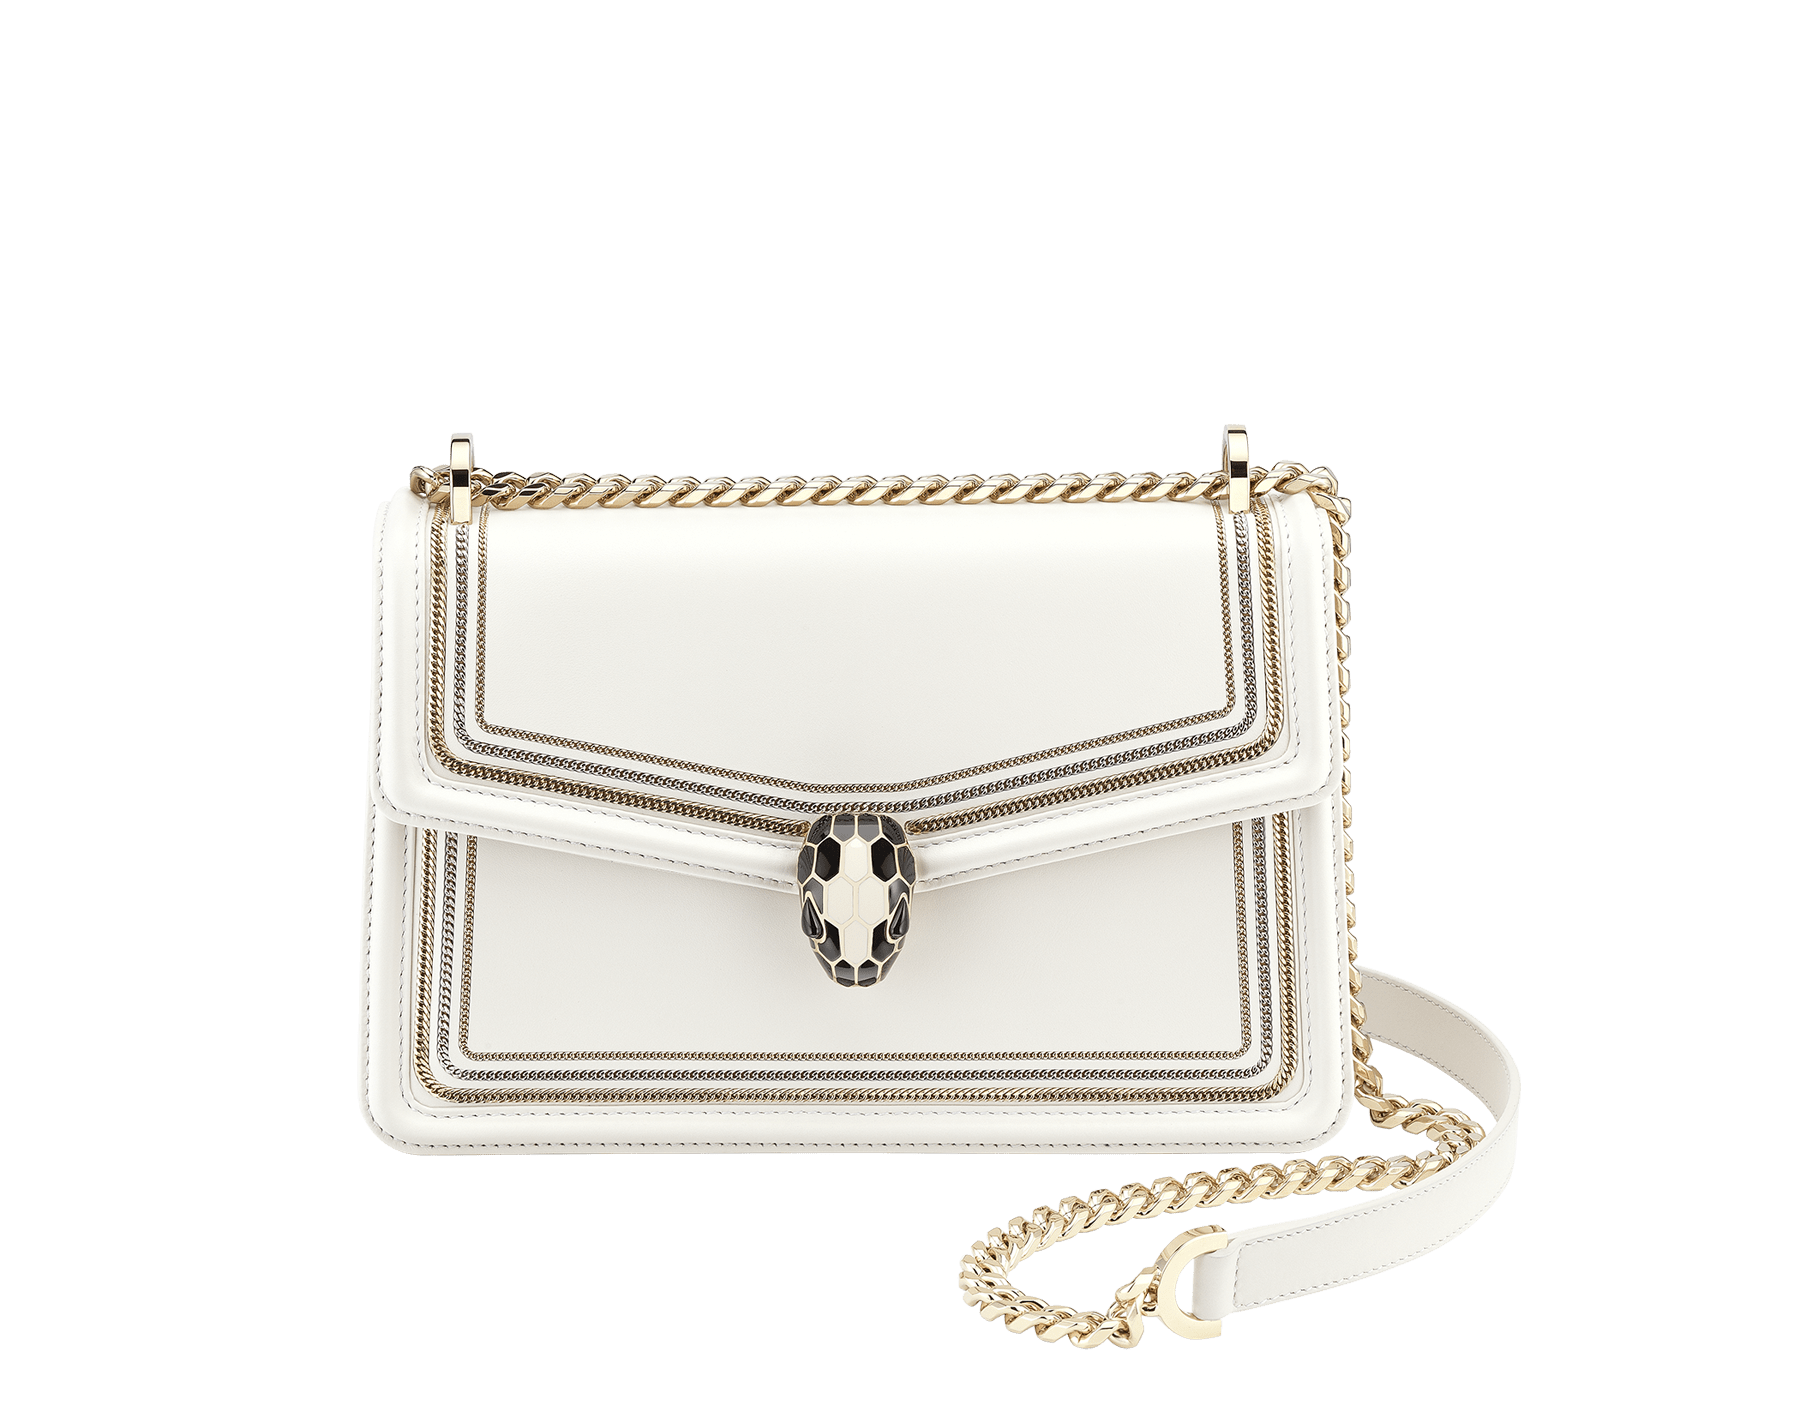 """""""Serpenti Diamond Blast"""" shoulder bag in black smooth calf leather, featuring a 3-Chain motif in light gold and palladium finishing. Iconic snakehead closure in light gold plated brass enriched with black and white enamel and black onyx eyes 922-3CFCL image 1"""